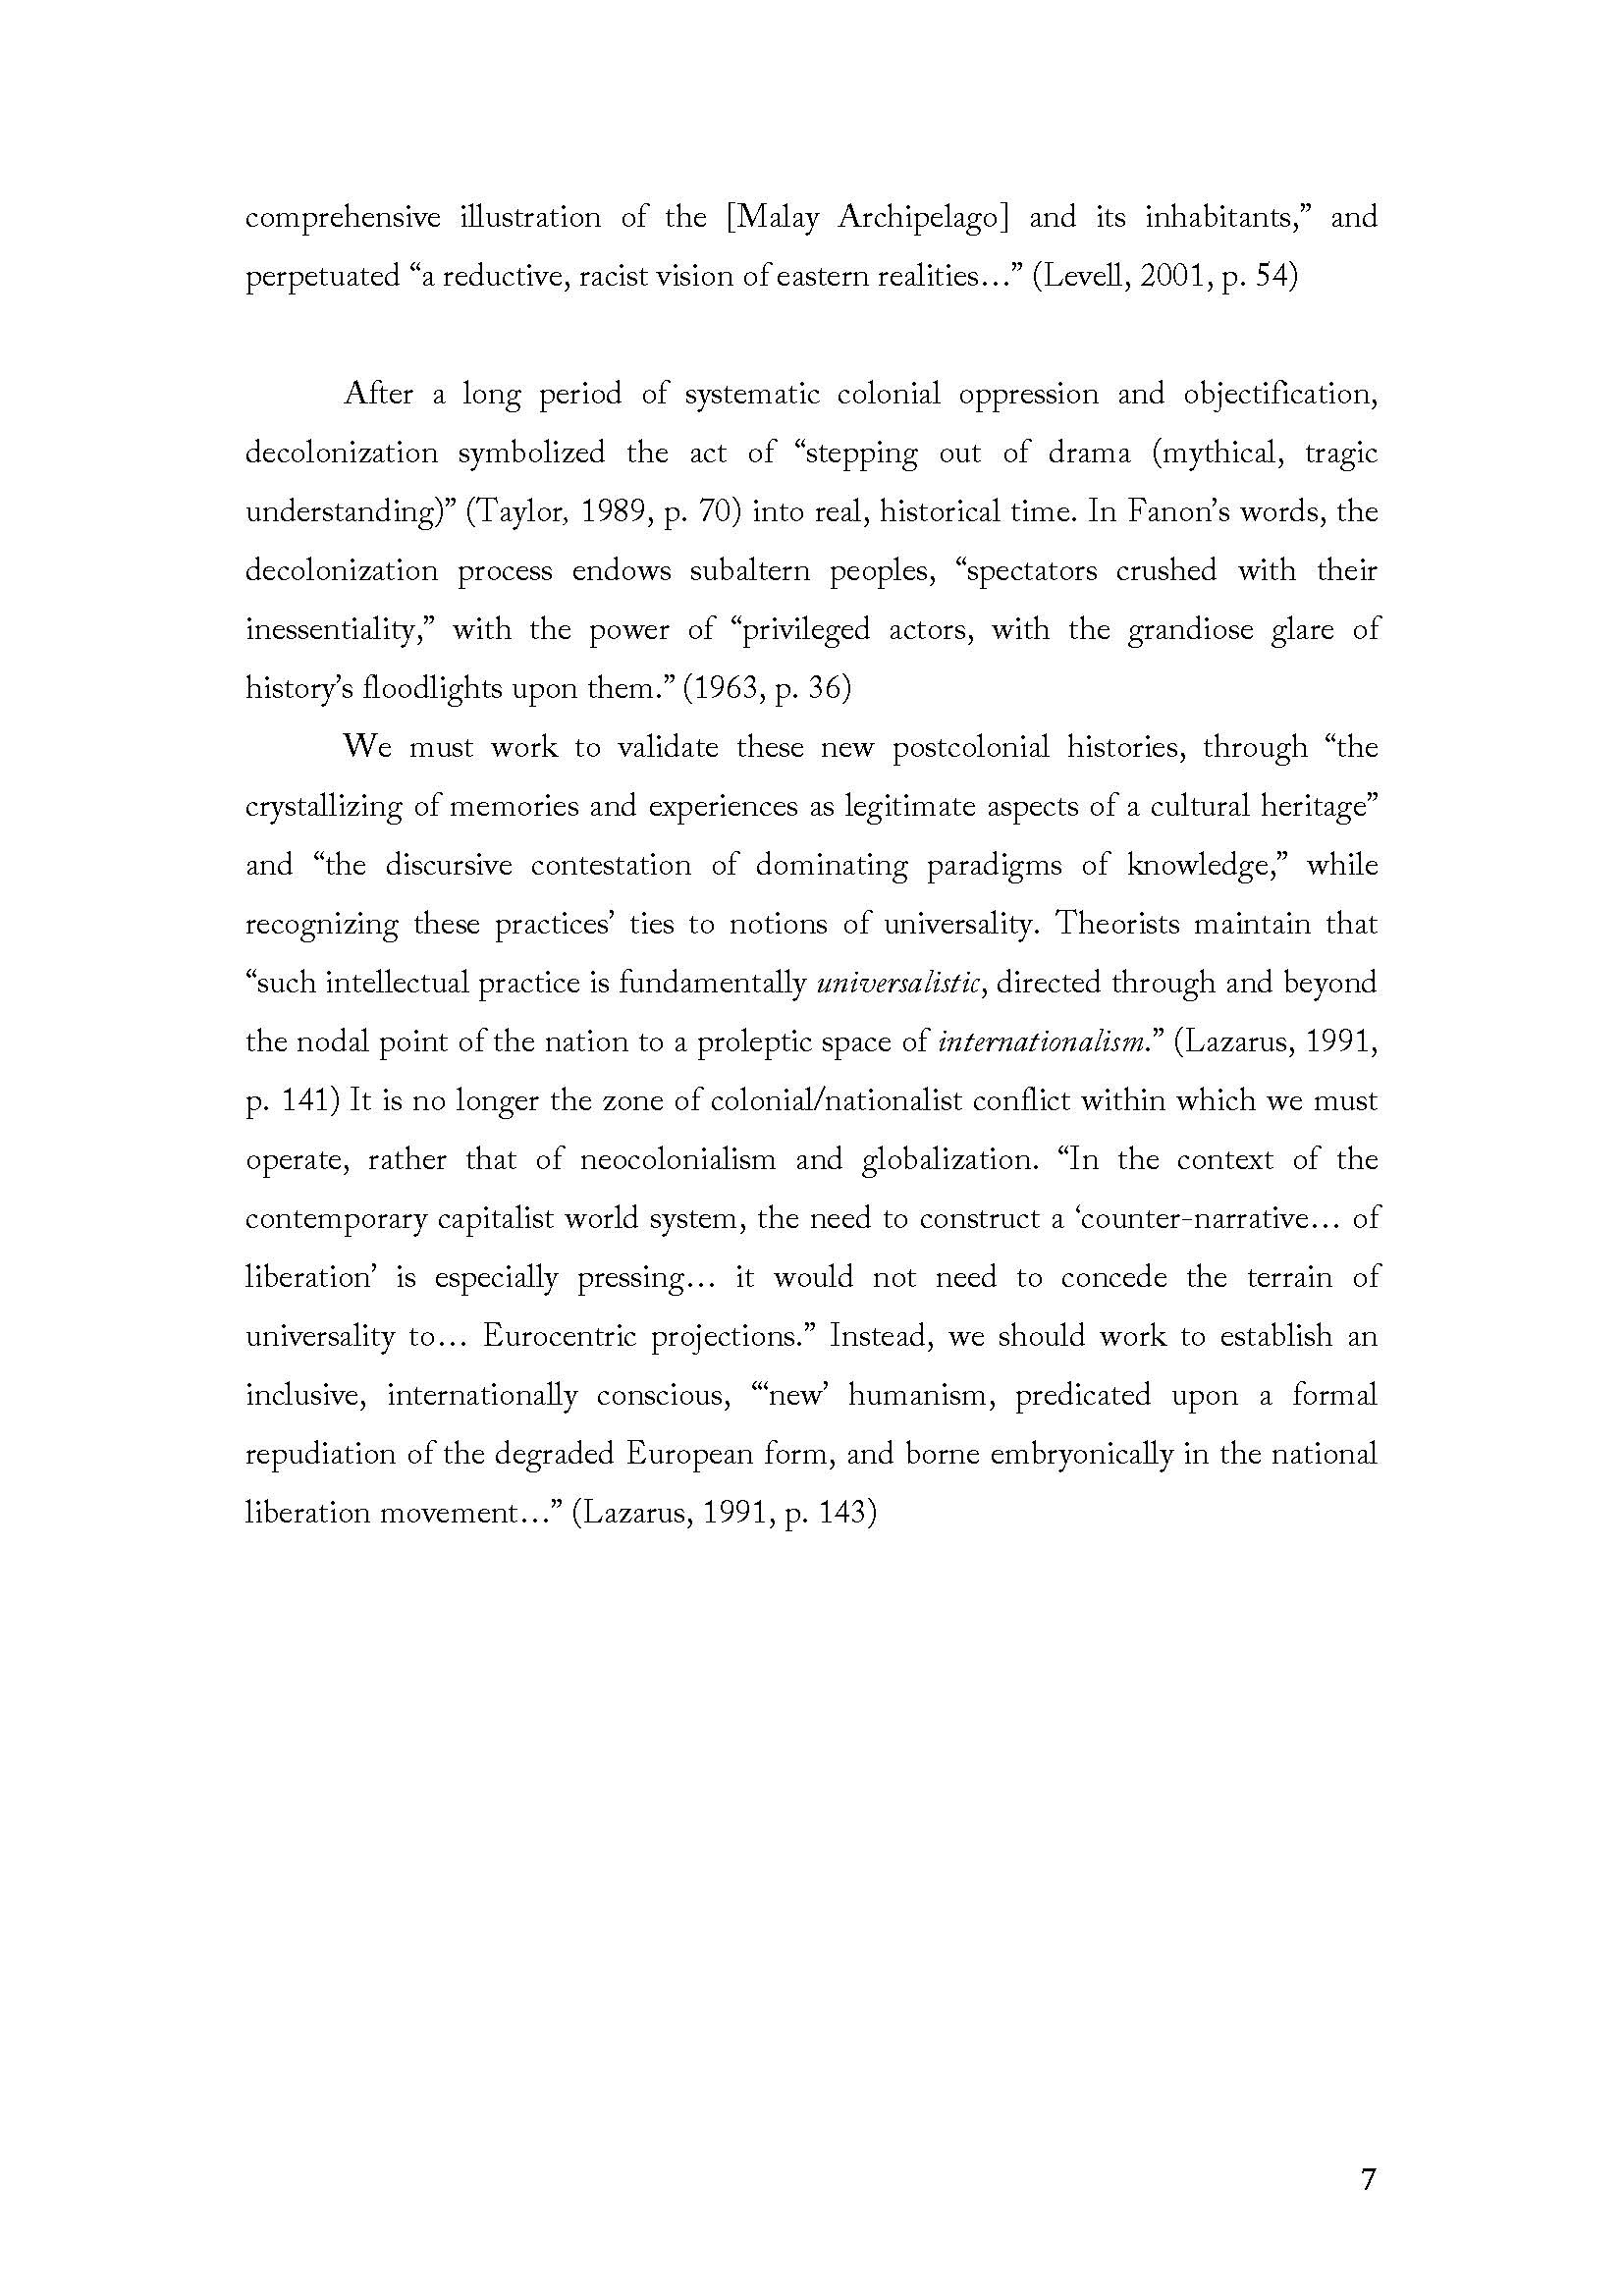 dissertationdraft2quoted_Page_07_1654